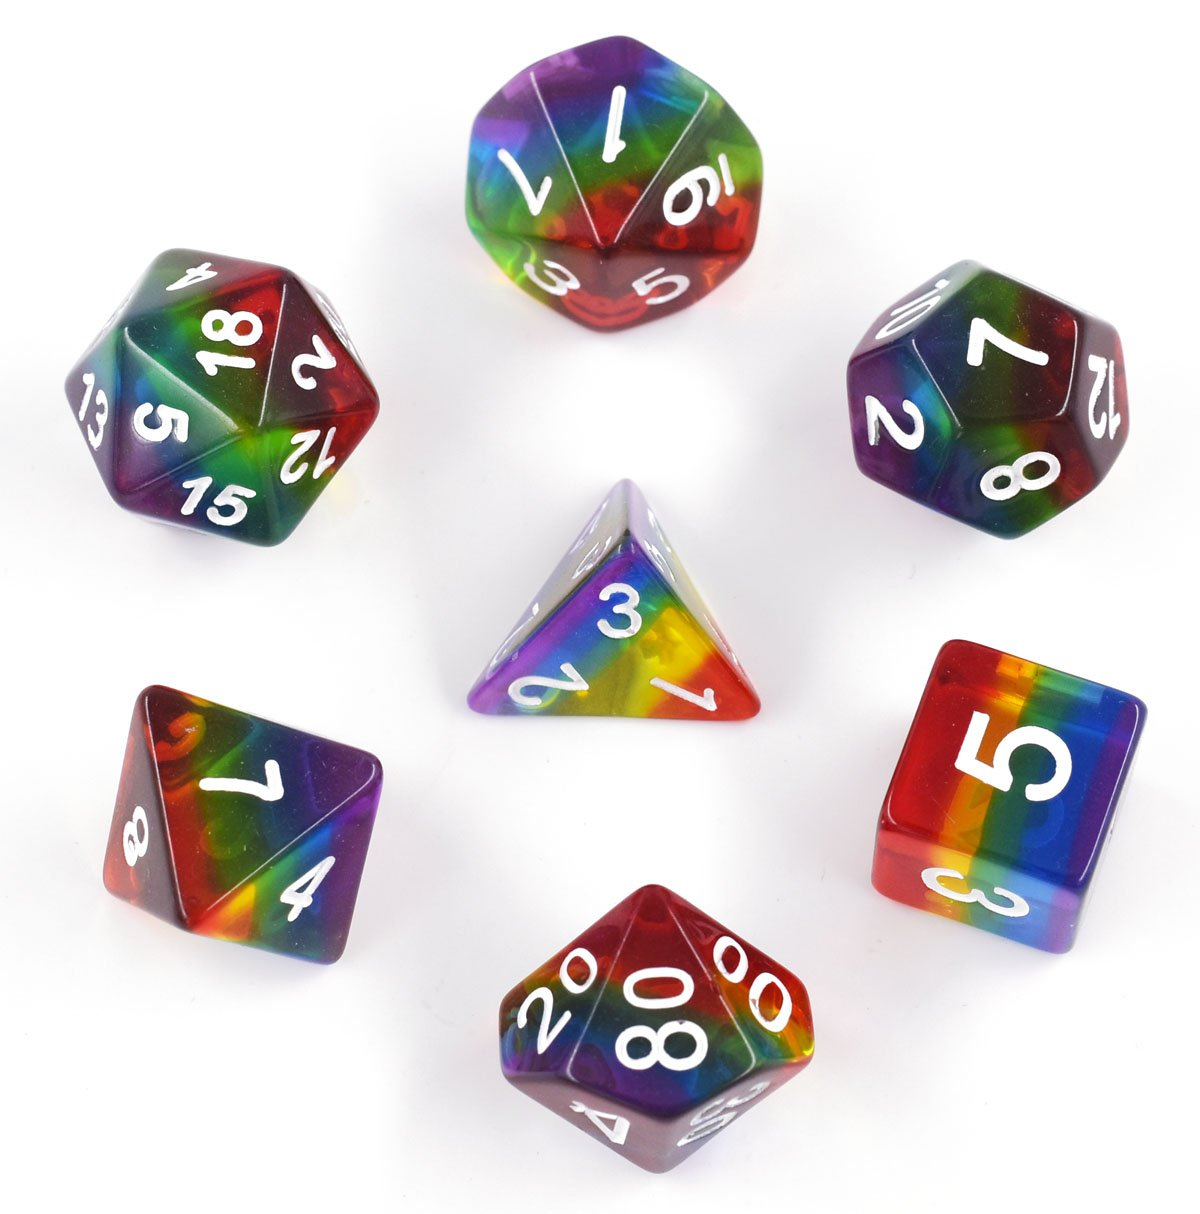 HUICHUANG Transparent Rainbow Dice, Polyhedral DND Dice Sets for Dungeons and Dragons Role Playing Game including Soft Dice Pouch